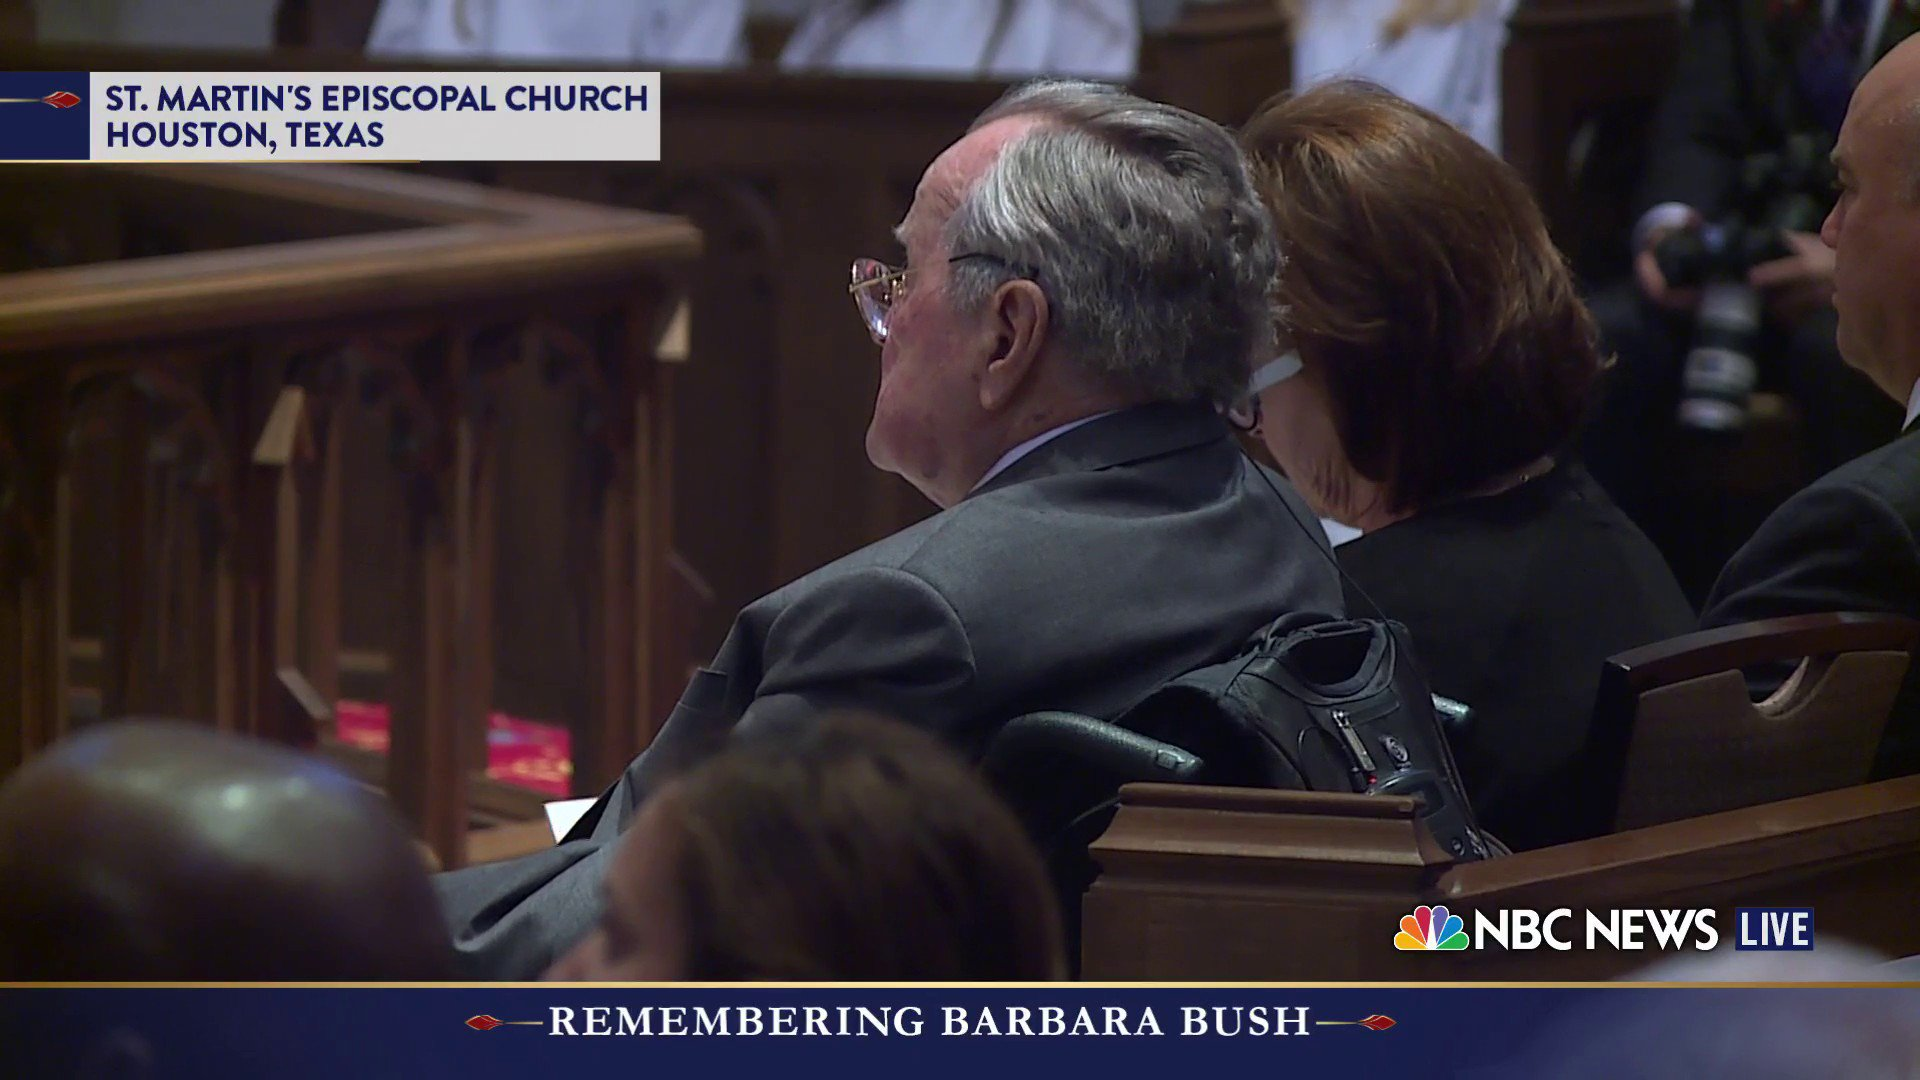 Former President George H.W. Bush sits in the first pew at the funeral for his wife of 73 years, Barbara Bush. https://t.co/5A0kgKU3I9